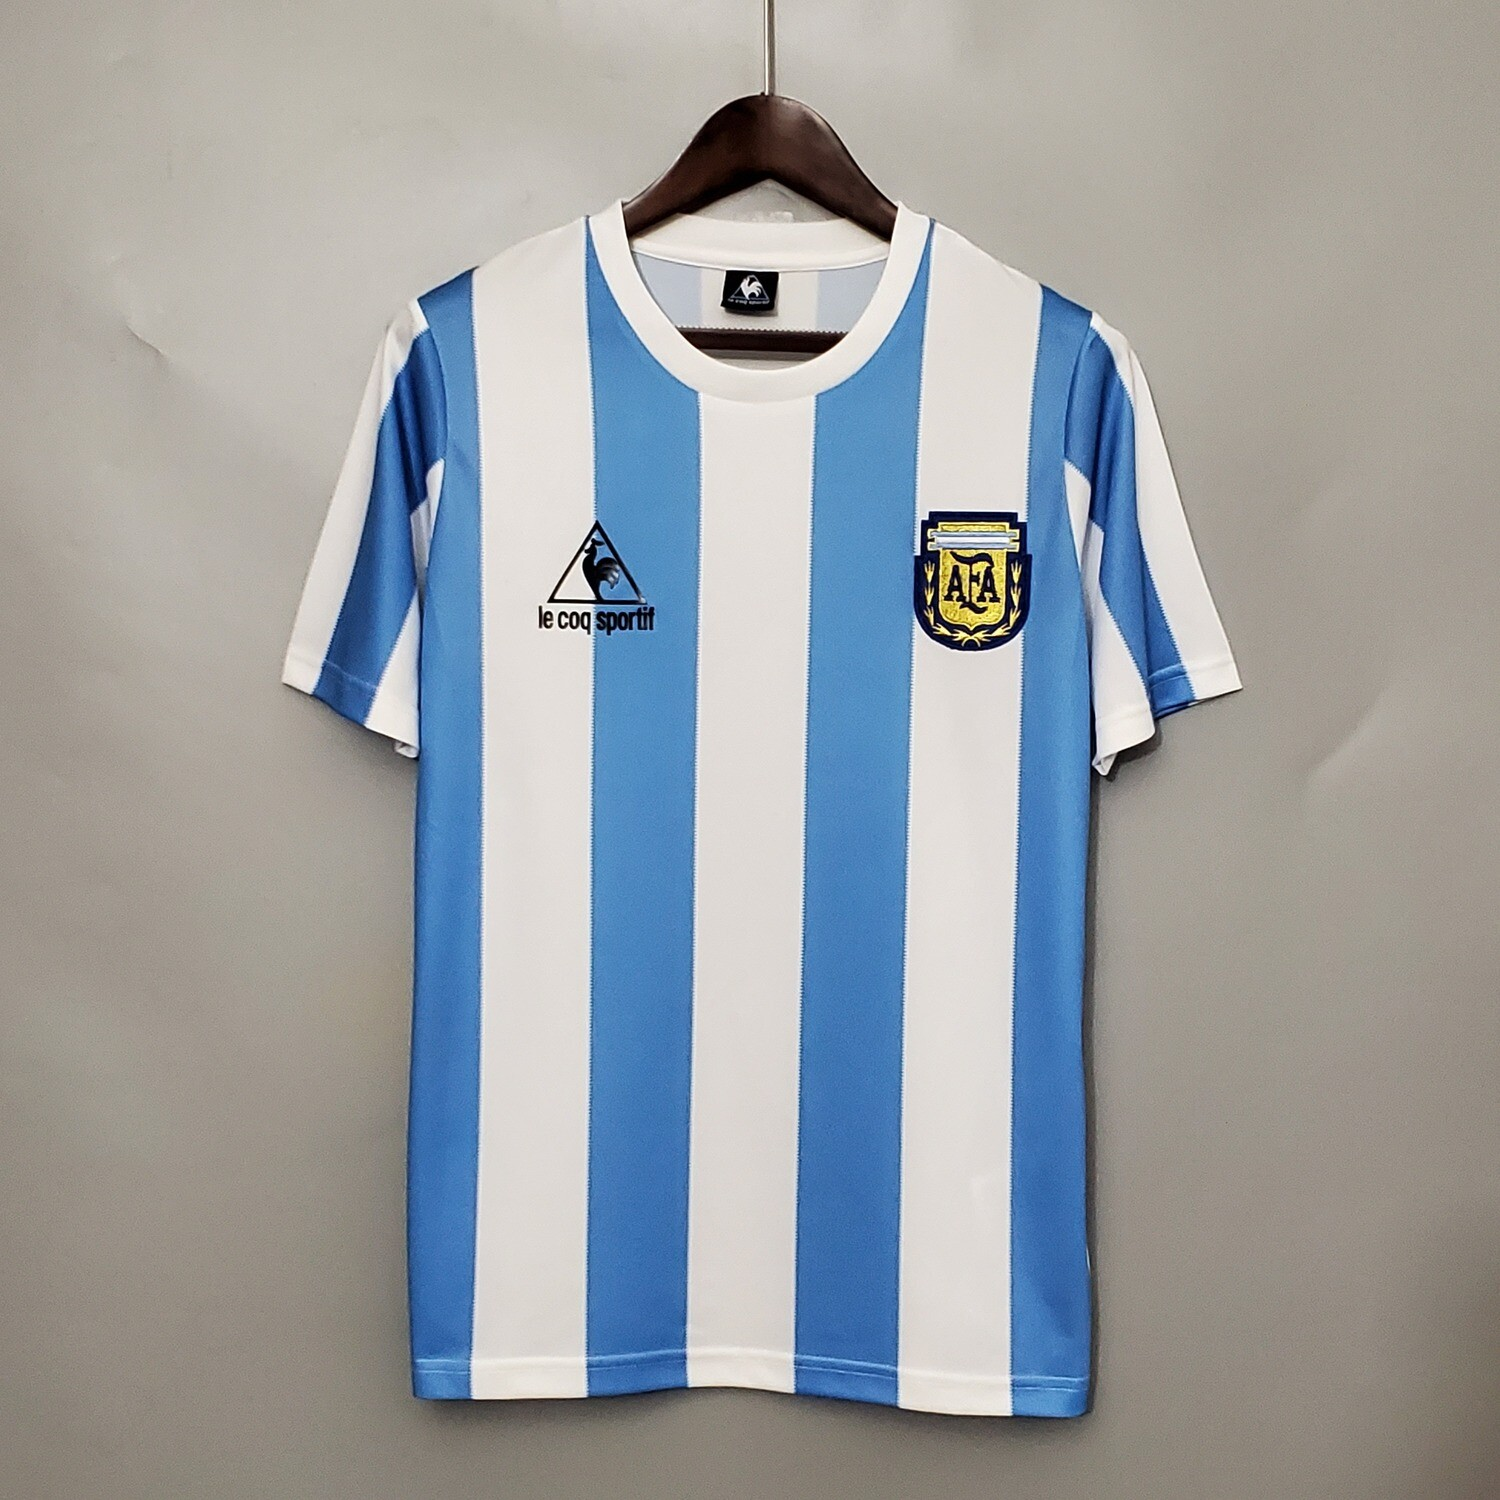 Argentina 1986 Retro Home Jersey [Pre-paid Only]